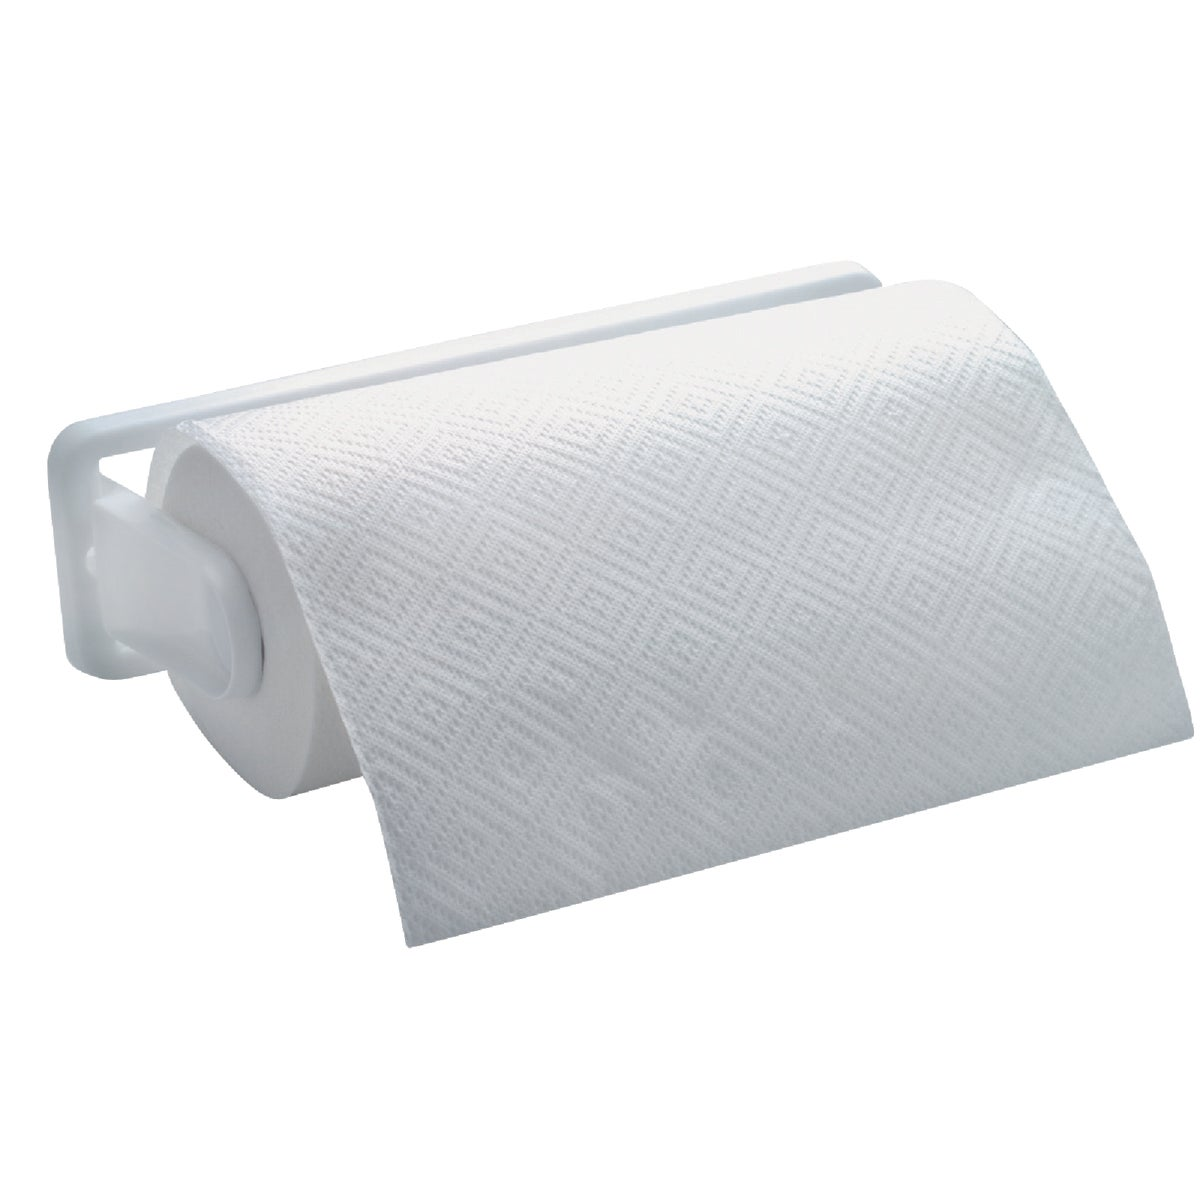 WHITE PAPER TOWEL HOLDER - 2361-RD-WHT by Rubbermaid Home